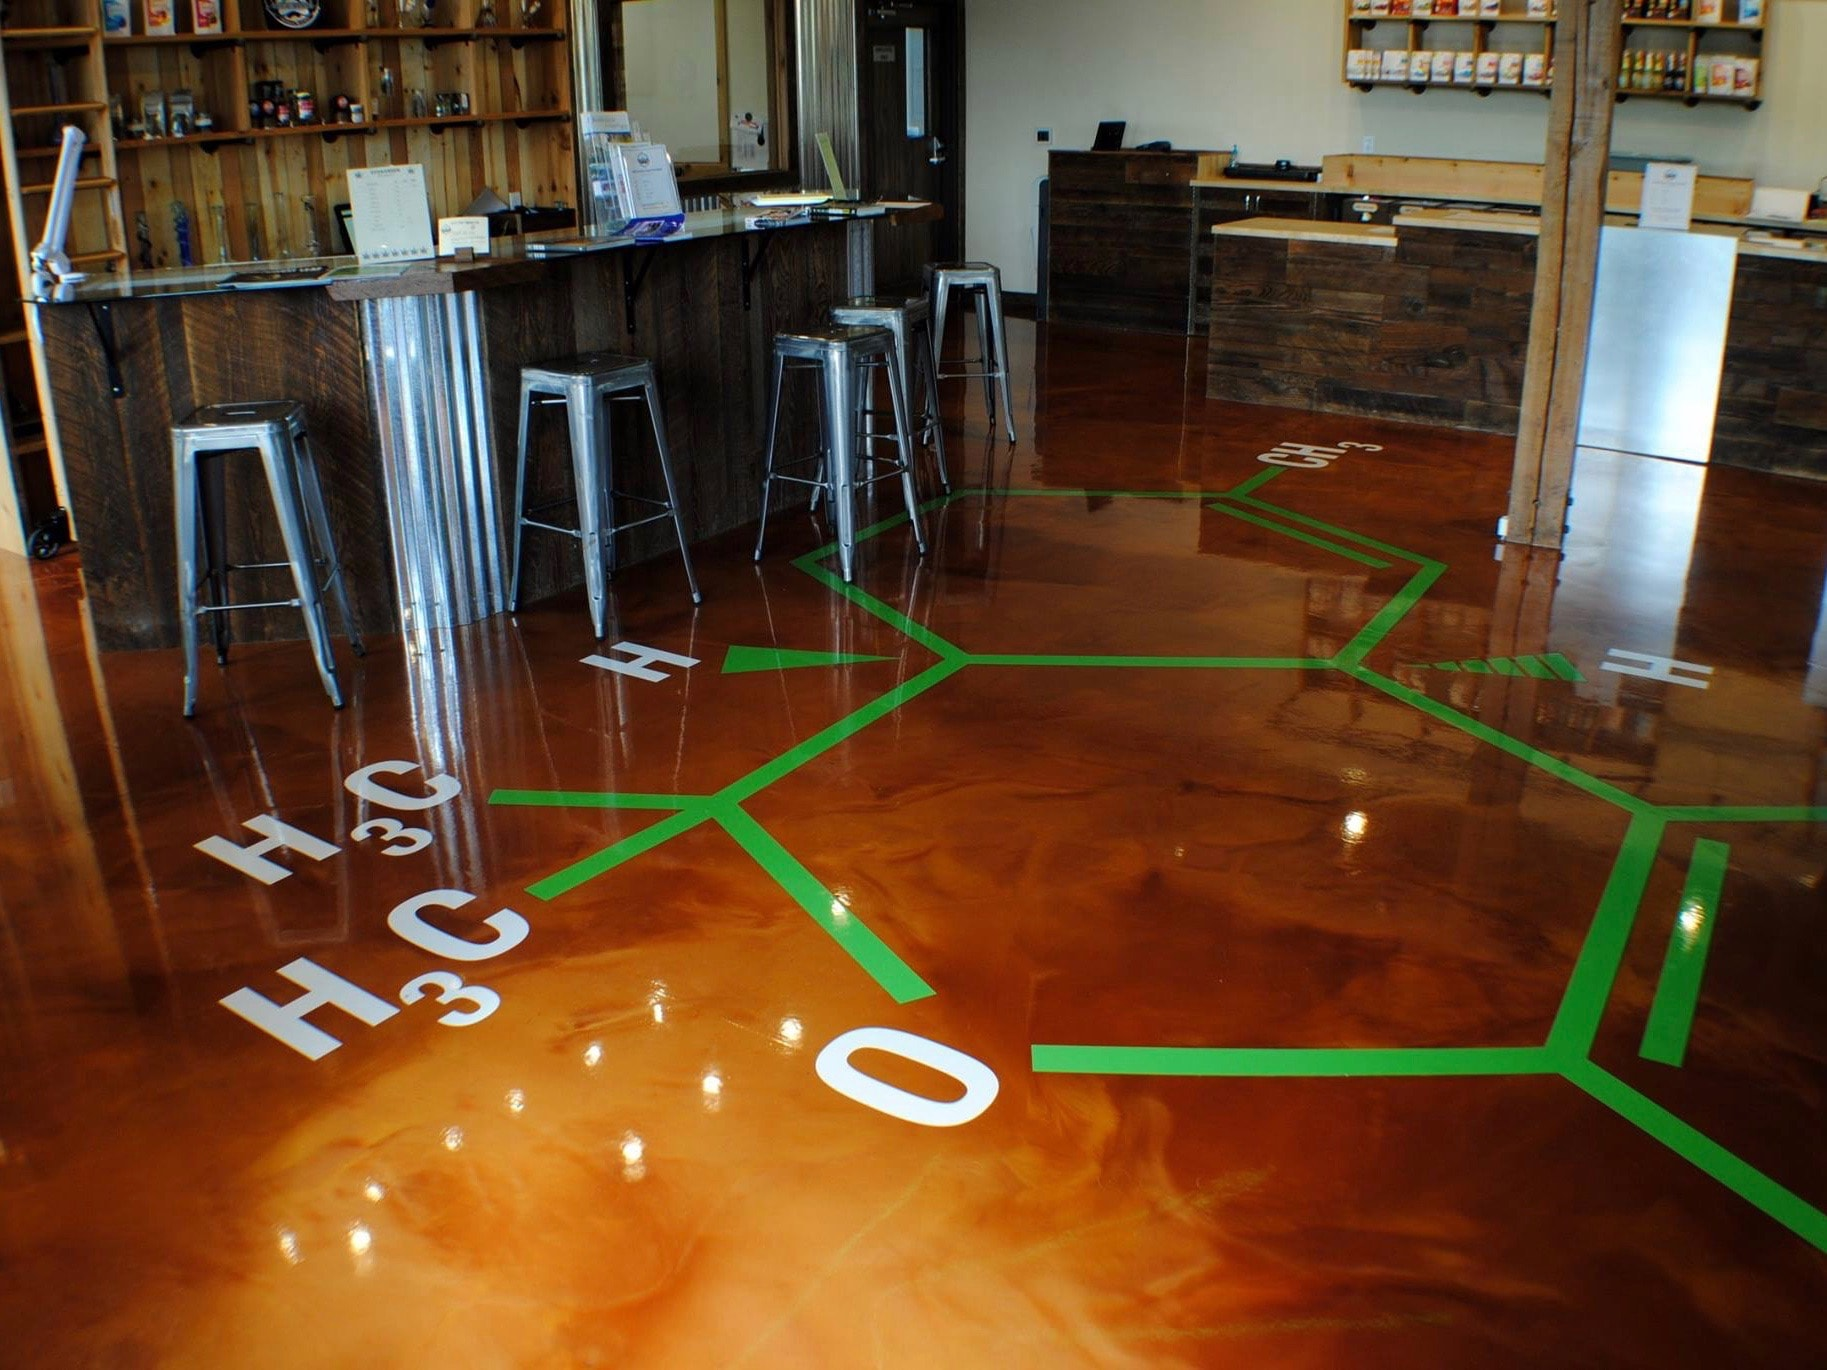 Cafe with chemistry design in flooring